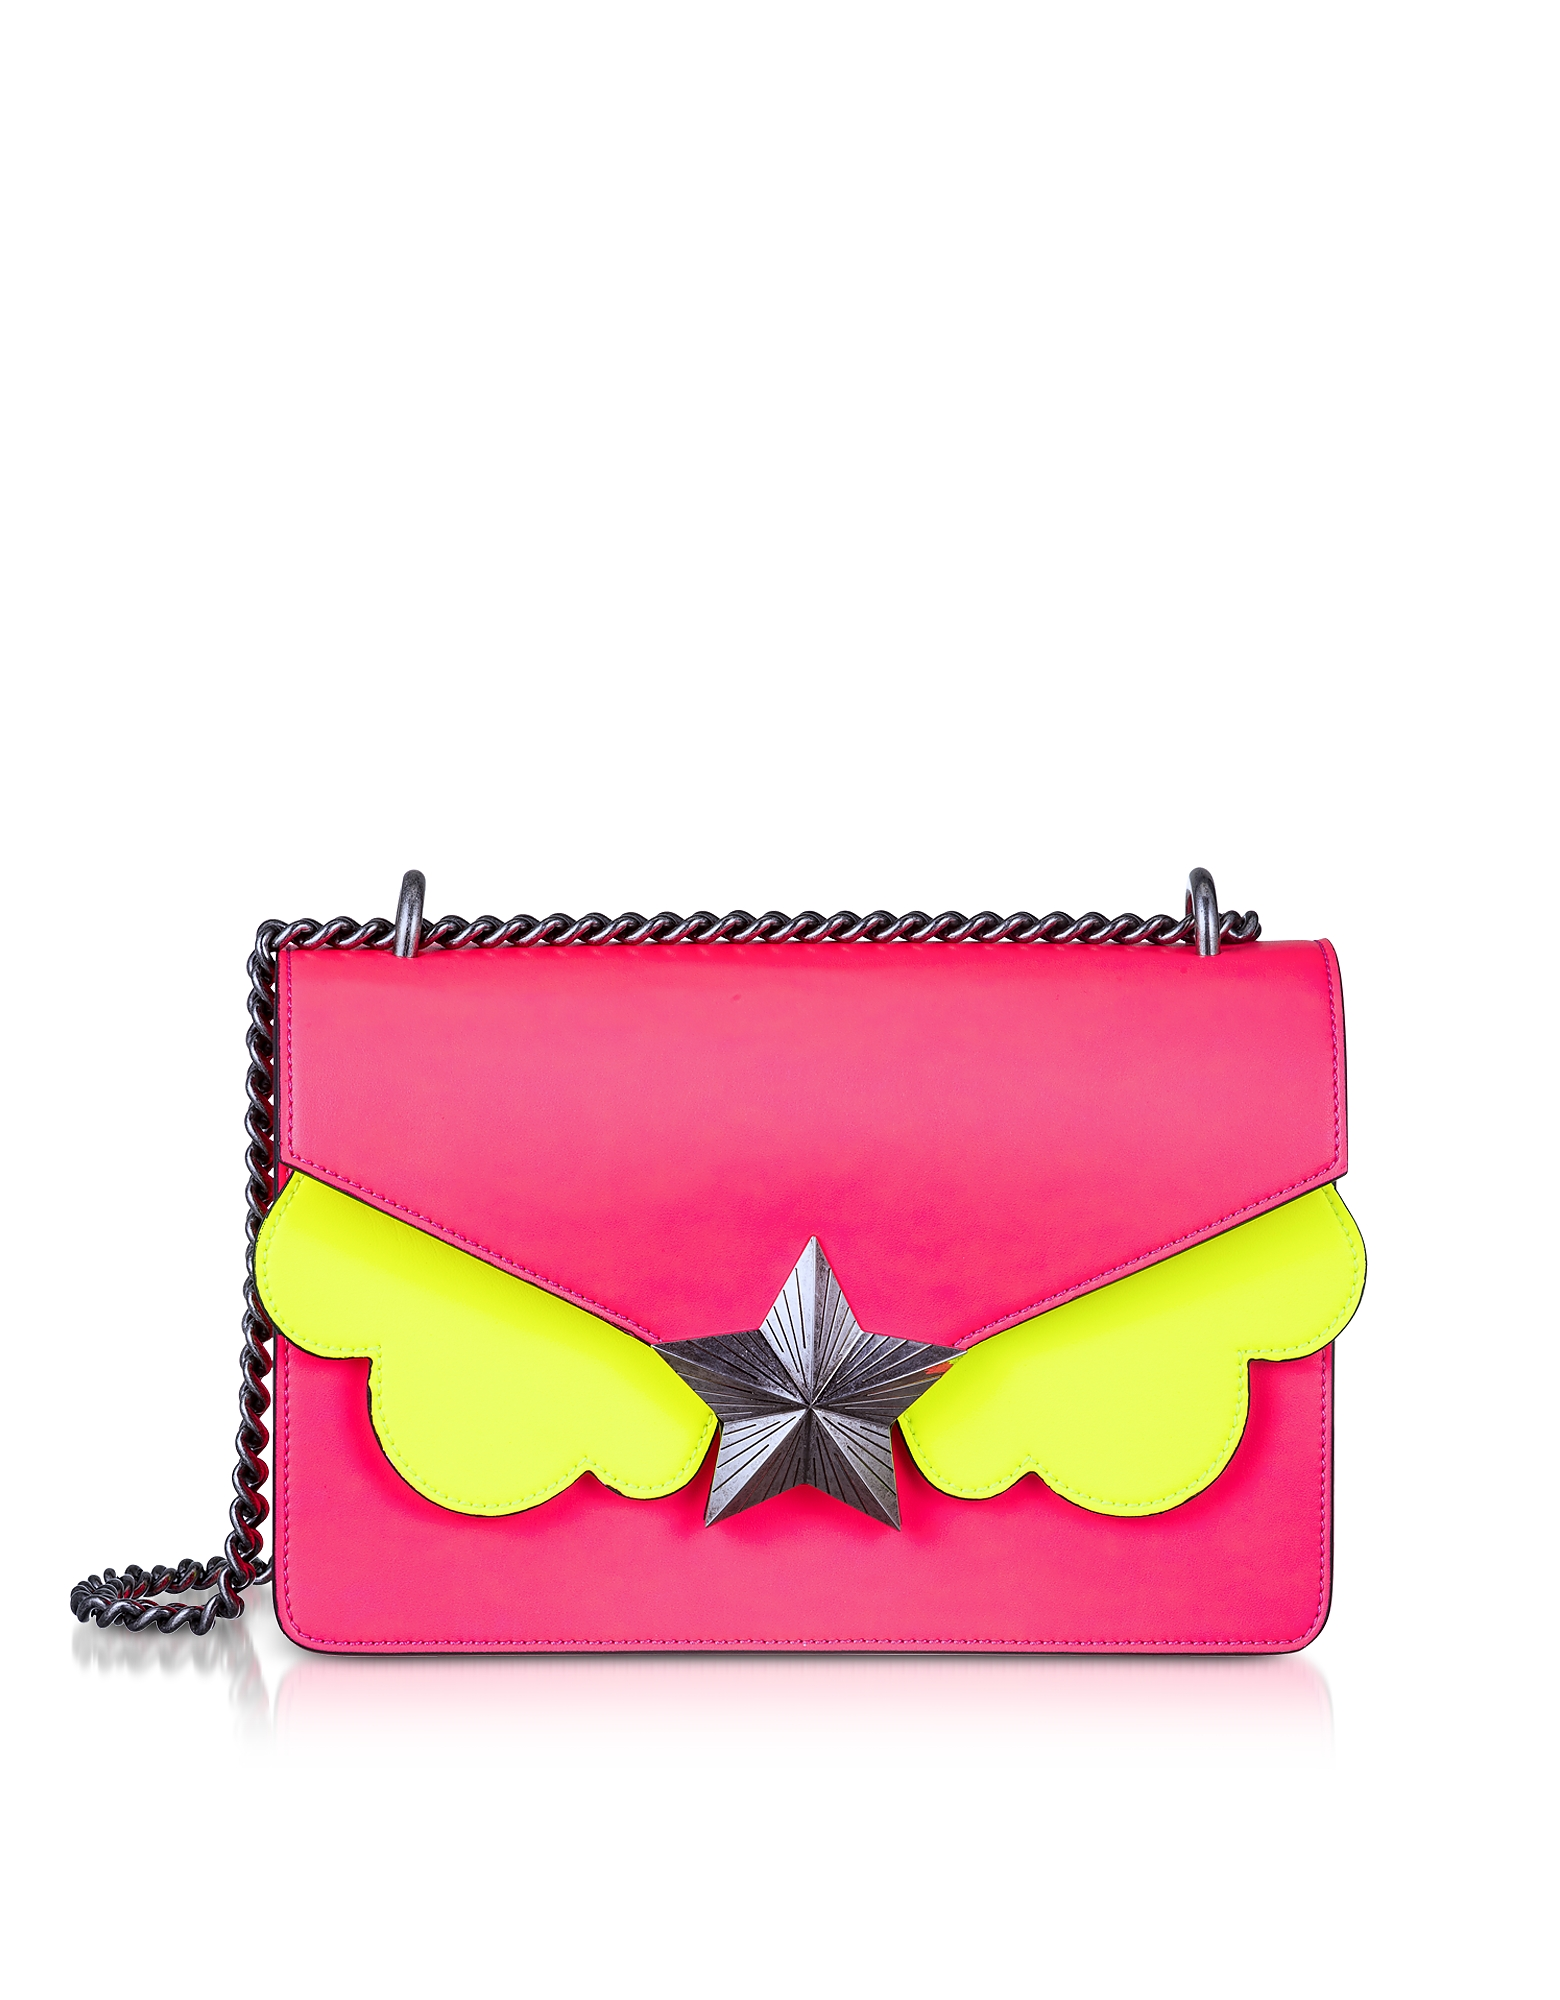 Neon Pink and Yellow Leather New Vega Medium Shoulder Bag